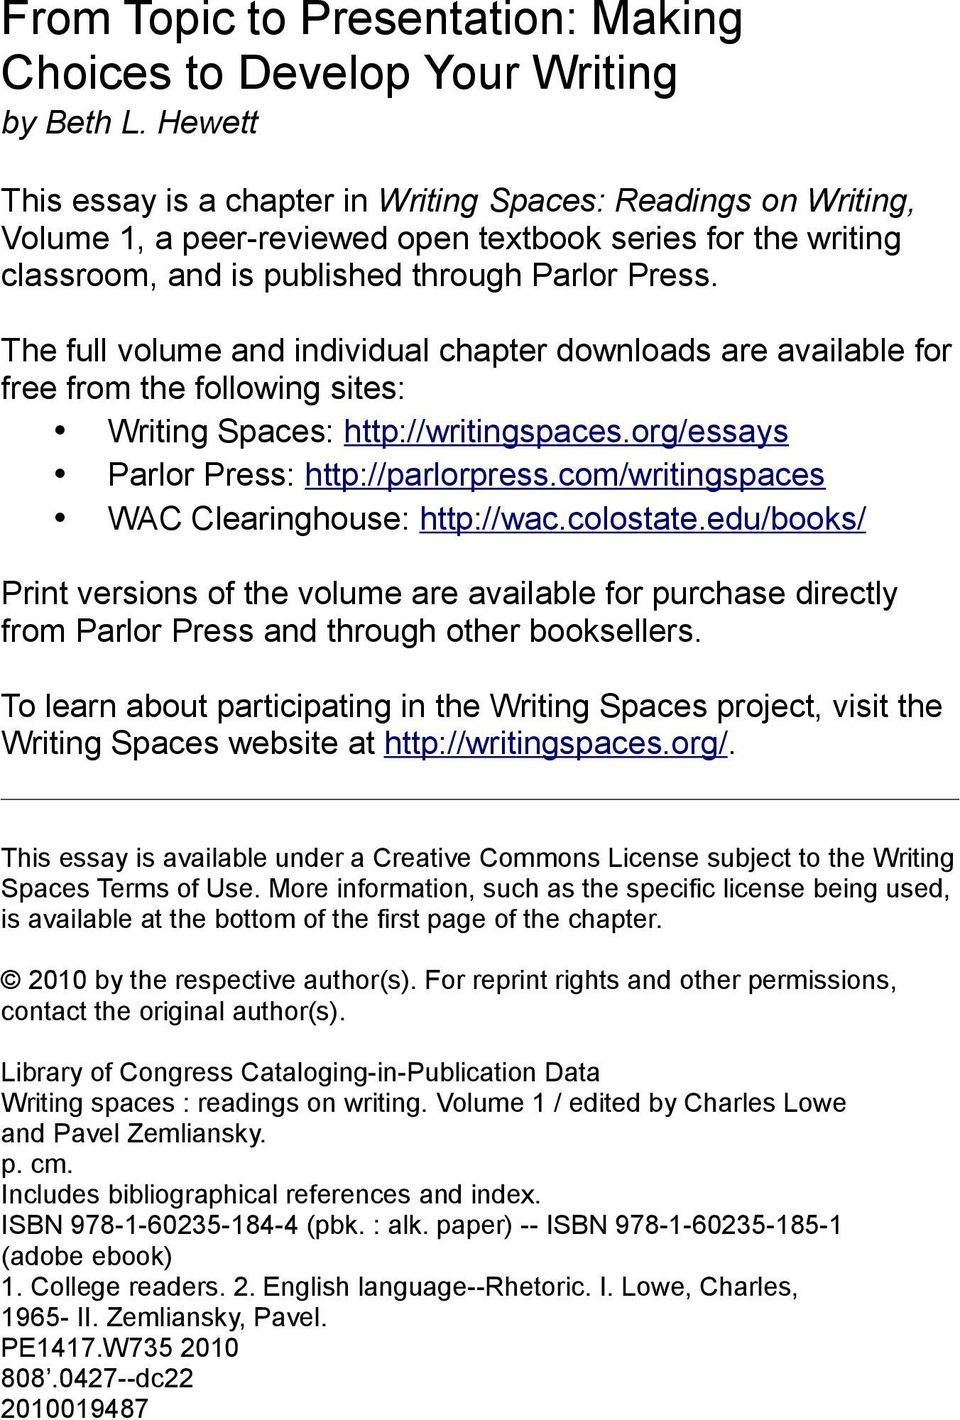 The full volume and individual chapter downloads are available for free from the following sites: Writing Spaces: http://writingspaces.org/essays Parlor Press: http://parlorpress.